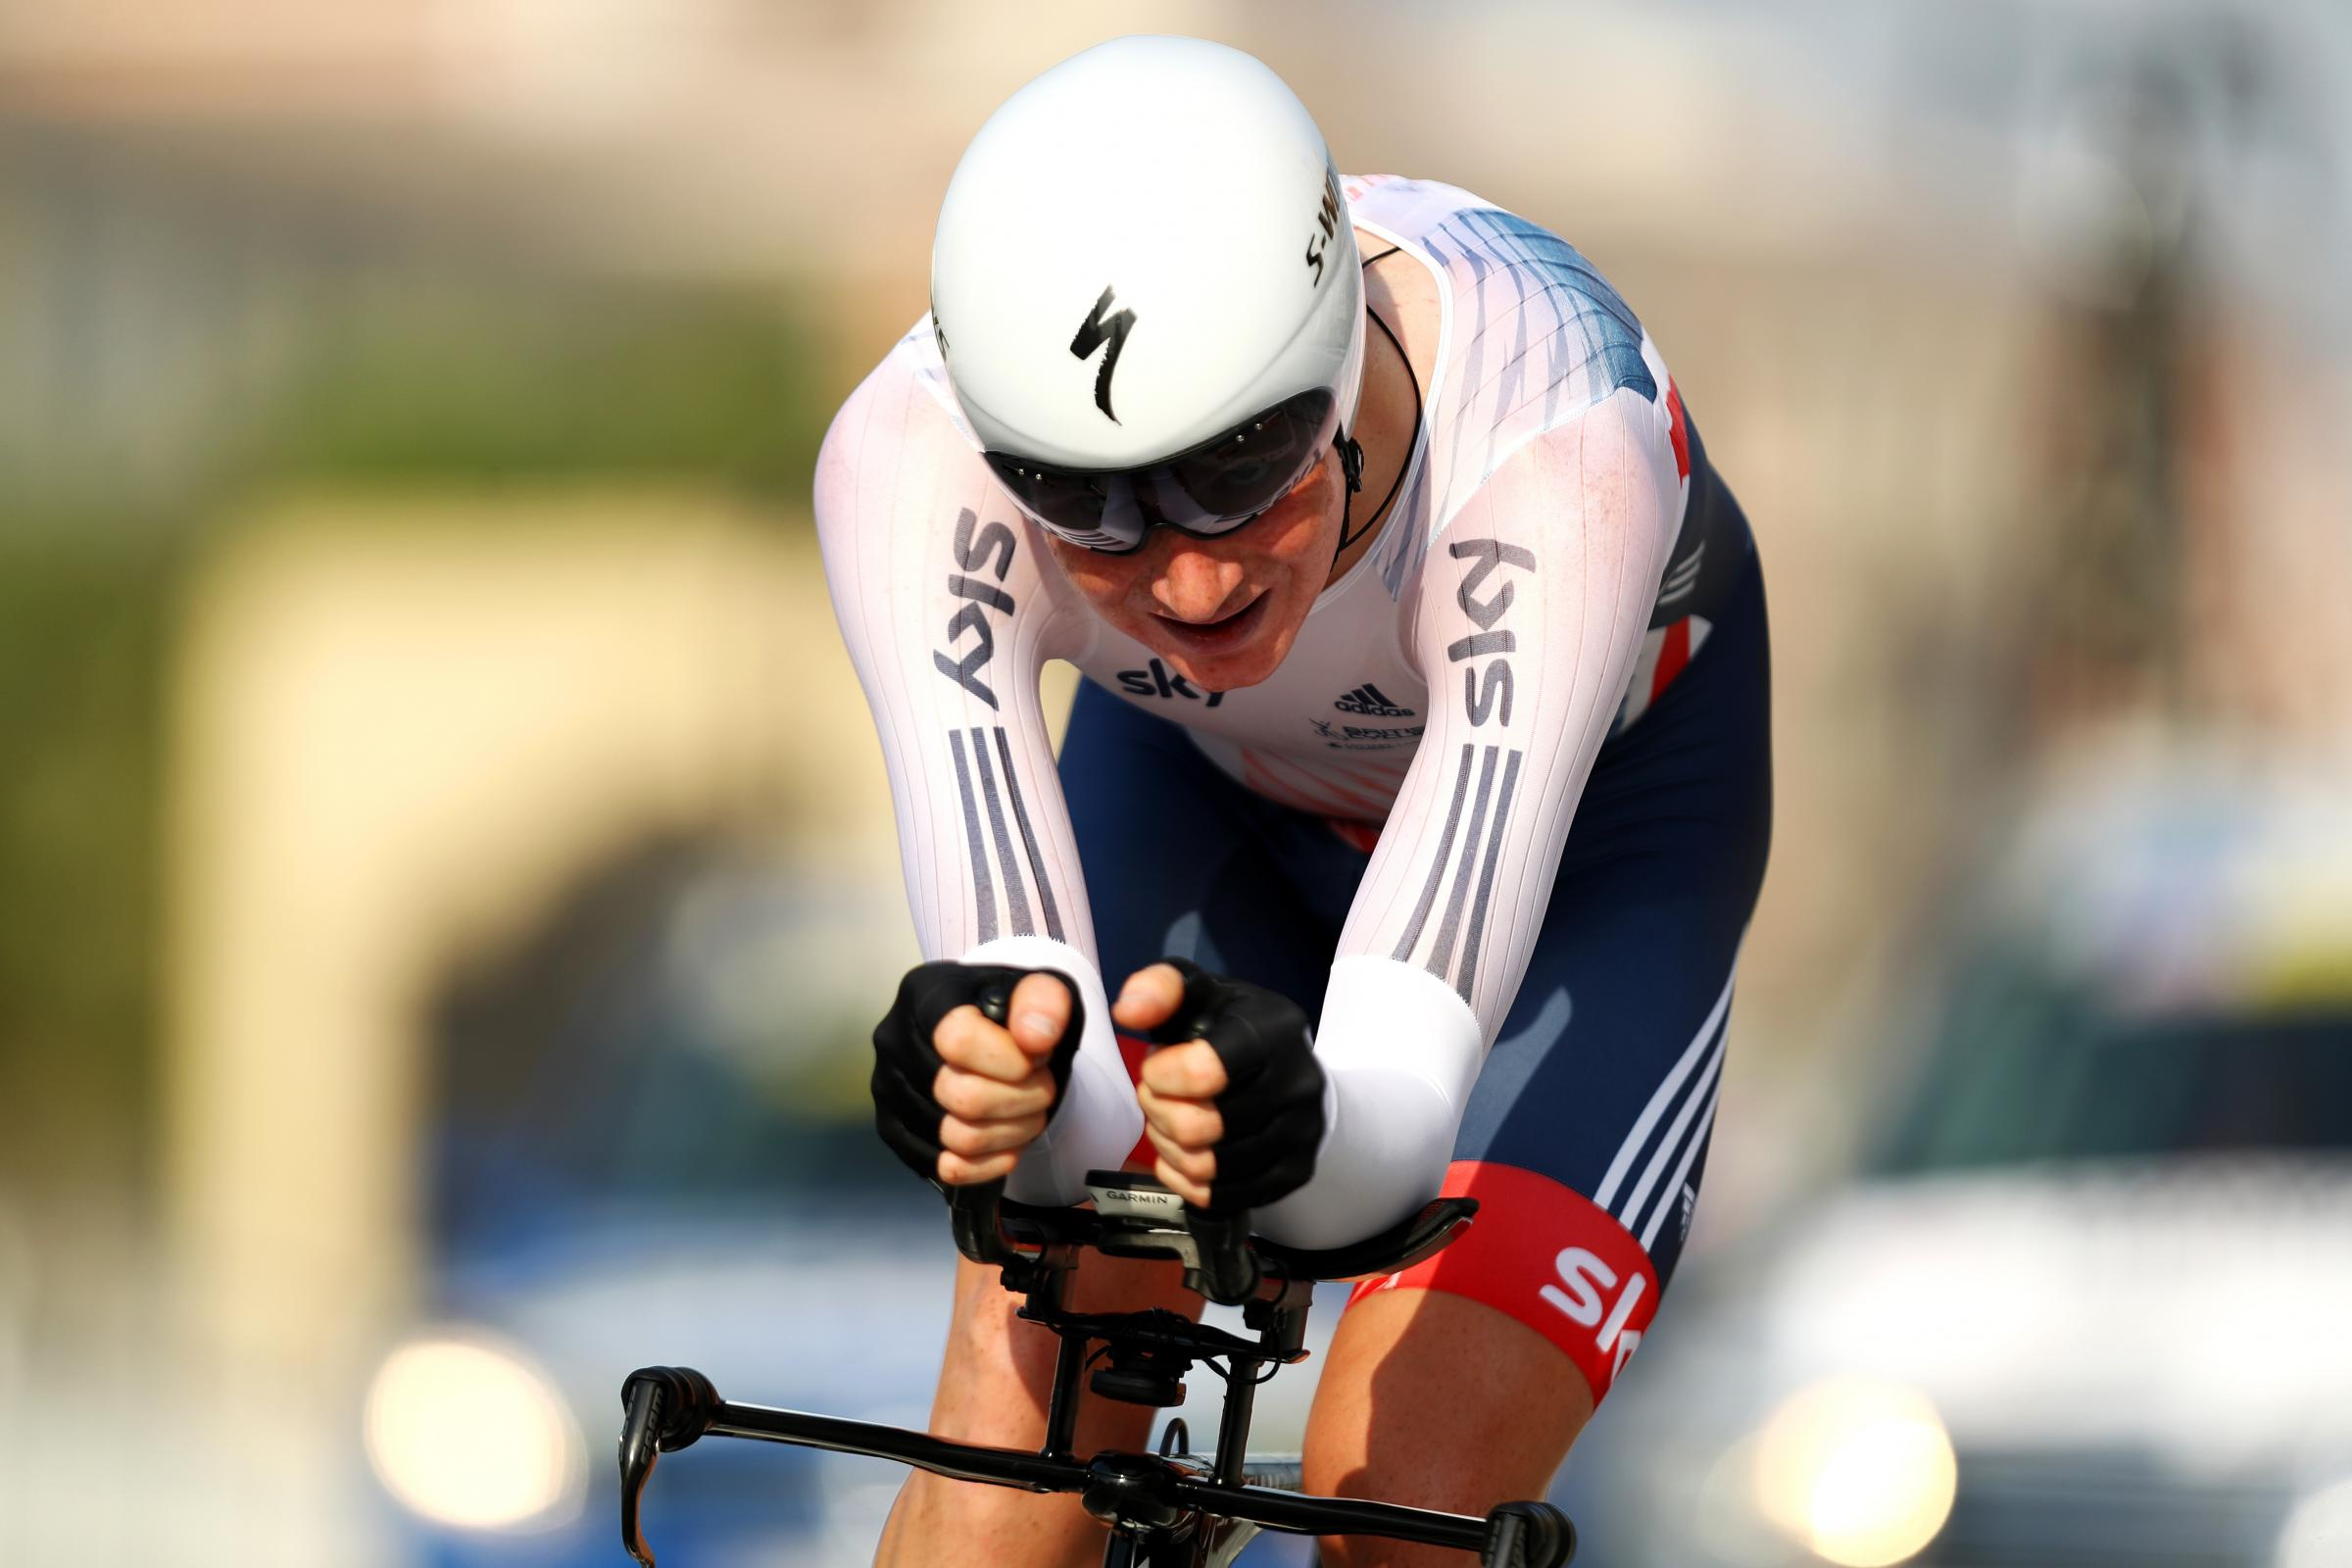 DOHA, QATAR - OCTOBER 10:  Tao Geoghegan Hart of Great Britain competes in the Men's U-23 Individual Time Trial during day two of the UCI Road World Championships on October 10, 2016 in Doha, Qatar.  (Photo by Bryn Lennon/Getty Images).